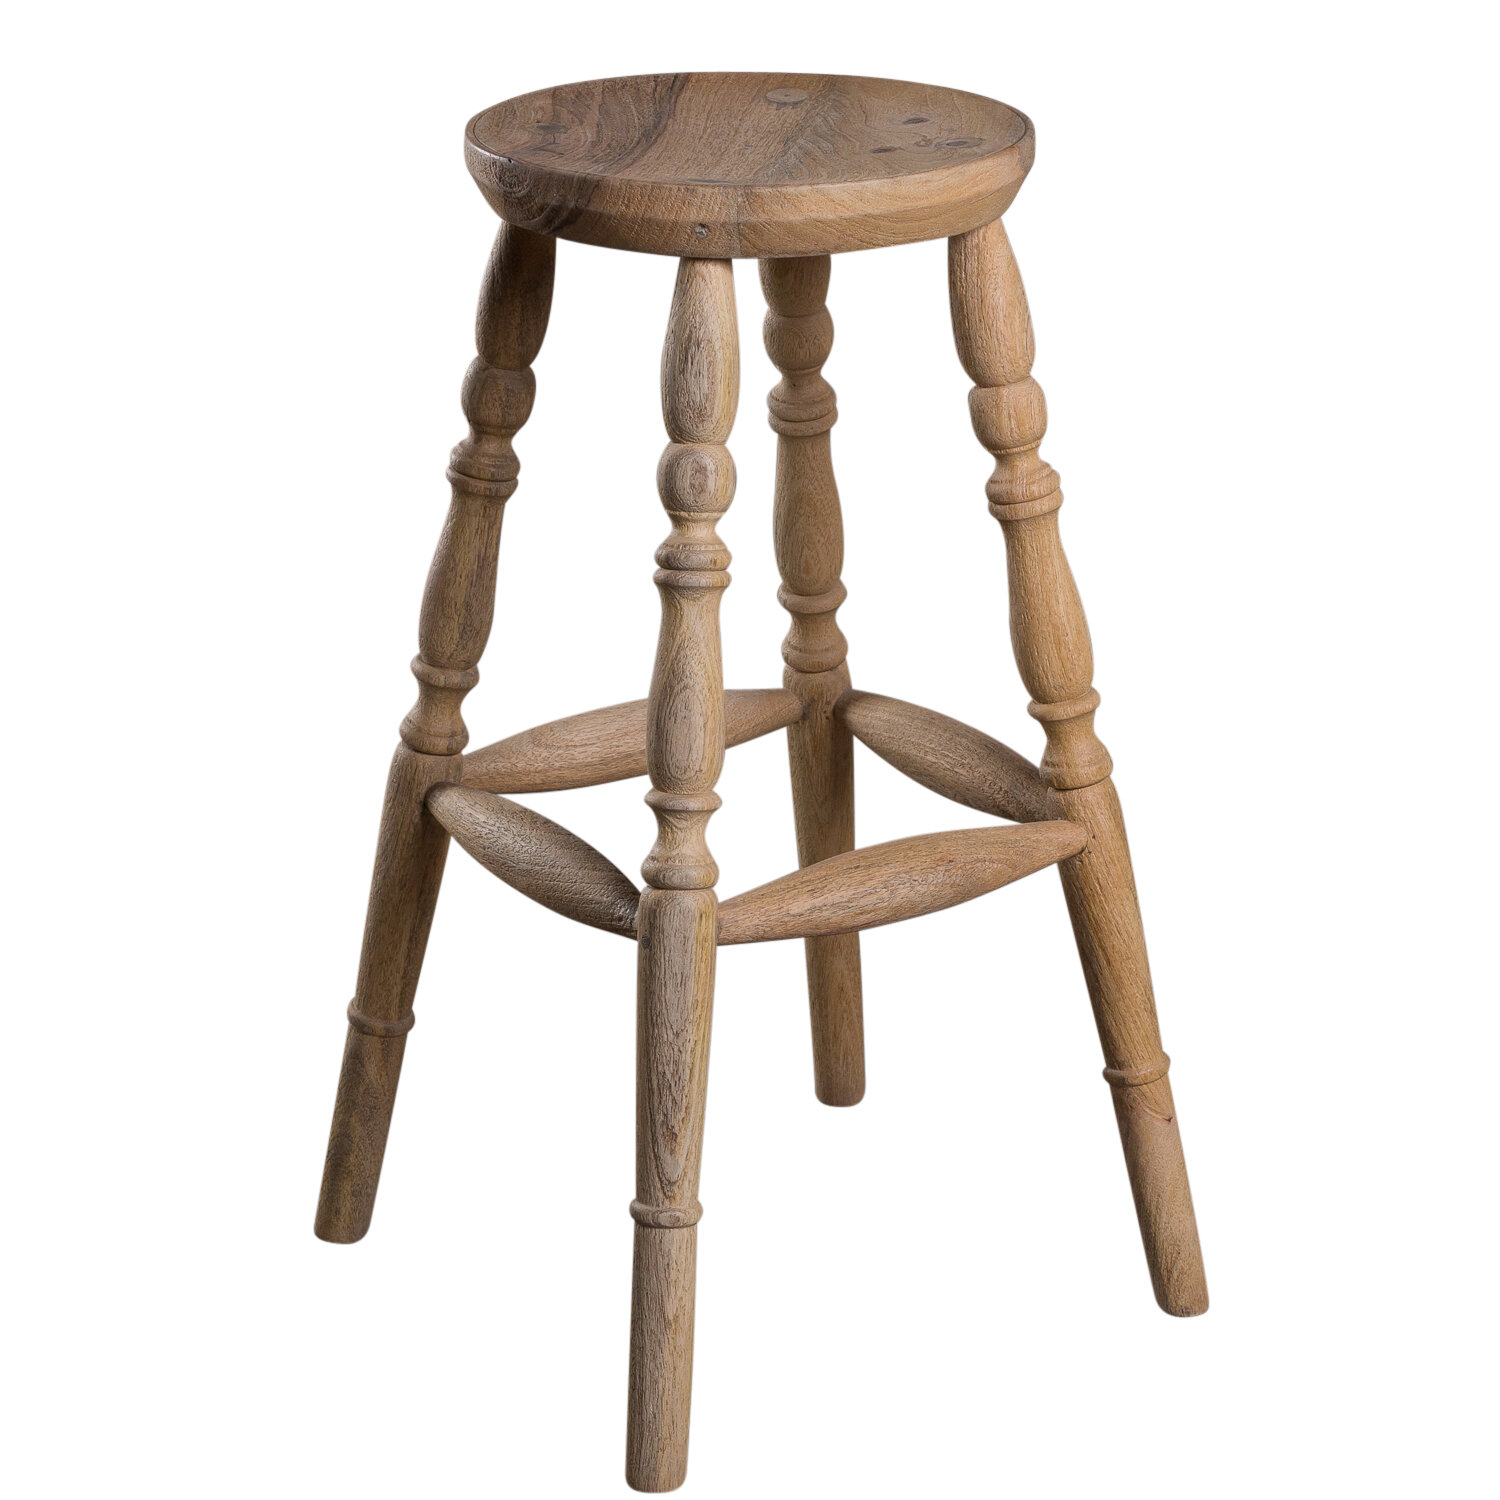 Wondrous Ouida 29 Bar Stool Lamtechconsult Wood Chair Design Ideas Lamtechconsultcom